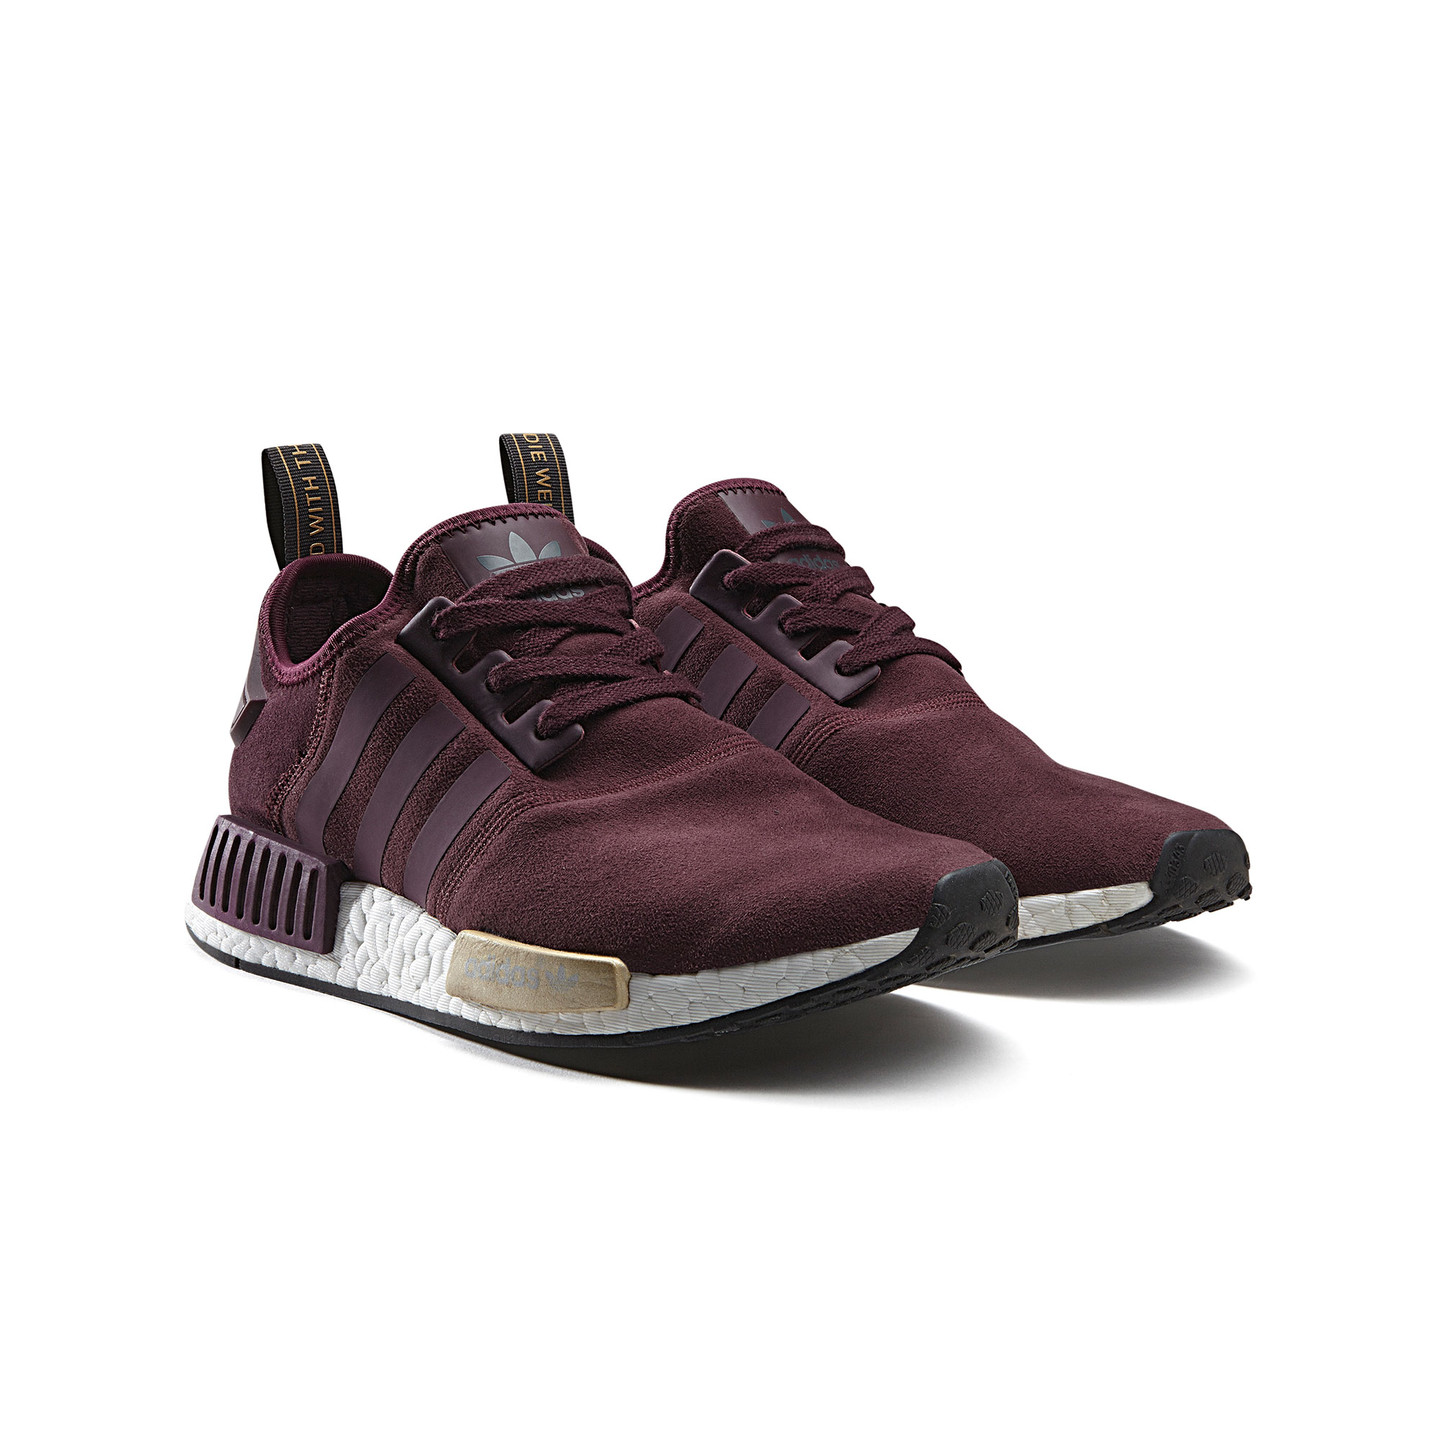 adidas nmd r1 runner w 39 details pack 39 maroon gold s75231 139 95 inkl mwst. Black Bedroom Furniture Sets. Home Design Ideas